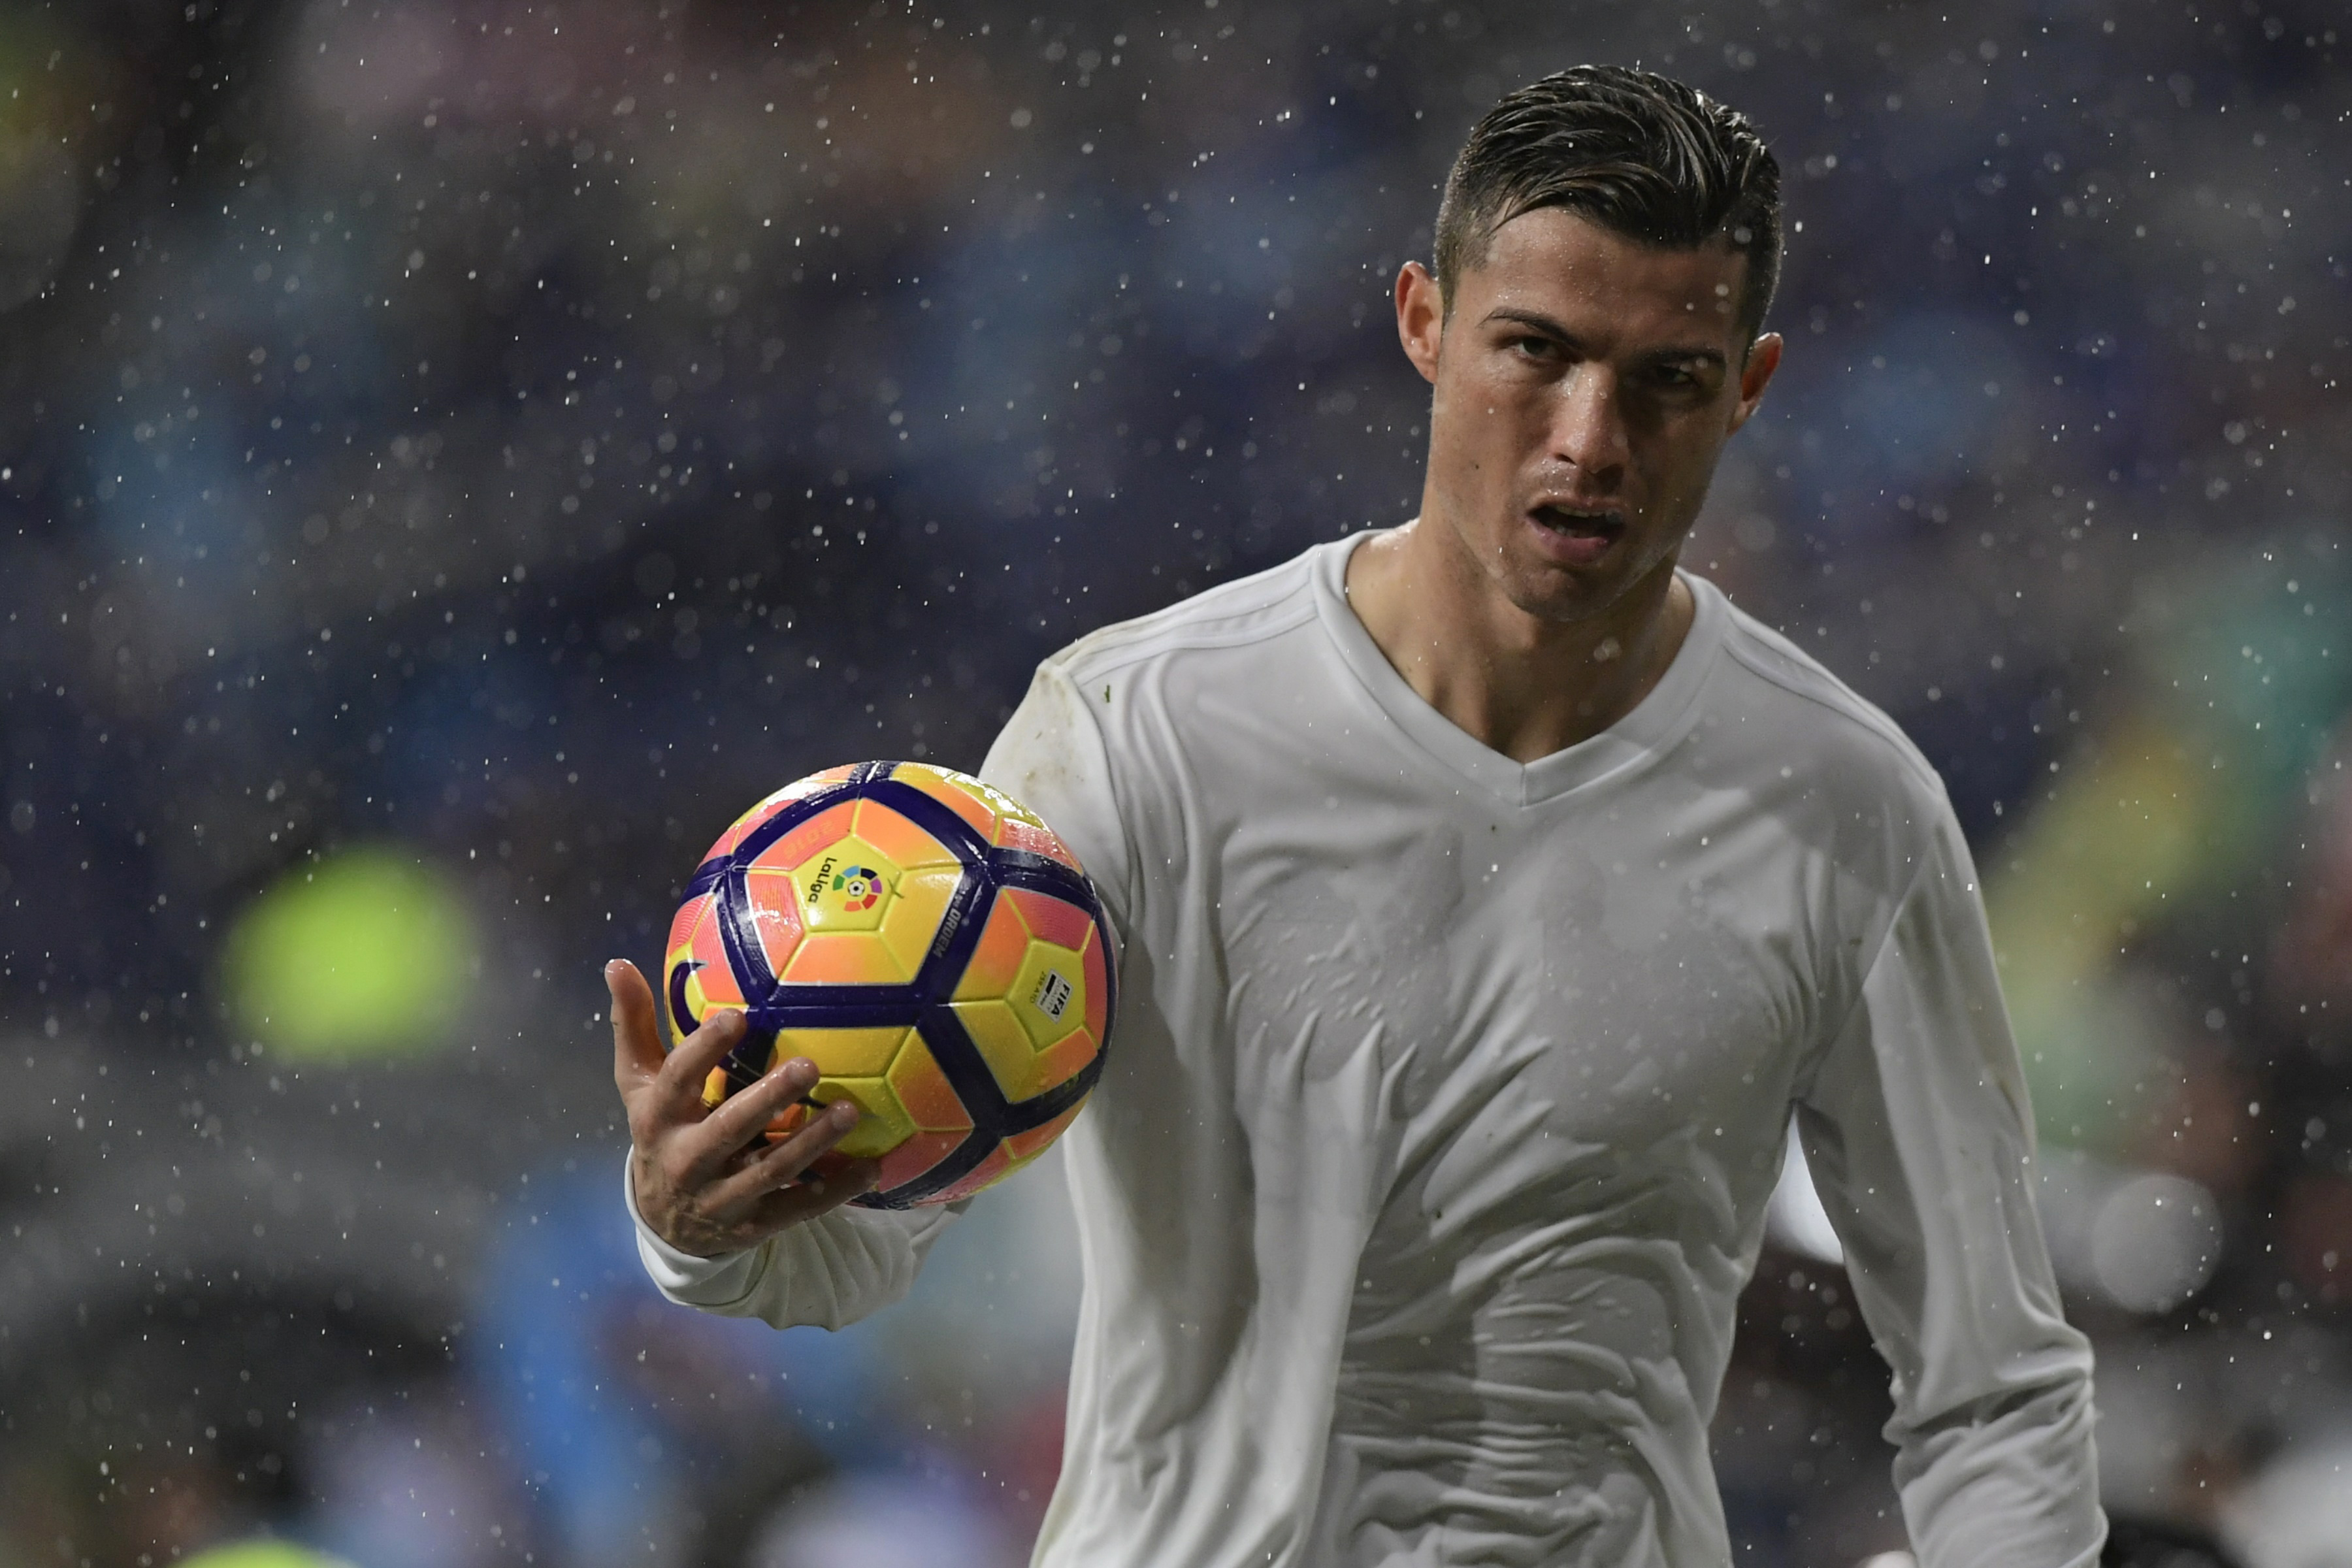 Real Madrid's Portuguese forward Cristiano Ronaldo holds a ball during the Spanish league football match Real Madrid CF vs Sporting de Gijon SAD at the Santiago Bernabeu stadium in Madrid on November 26, 2016. / AFP / JAVIER SORIANO (Photo credit should read JAVIER SORIANO/AFP/Getty Images)